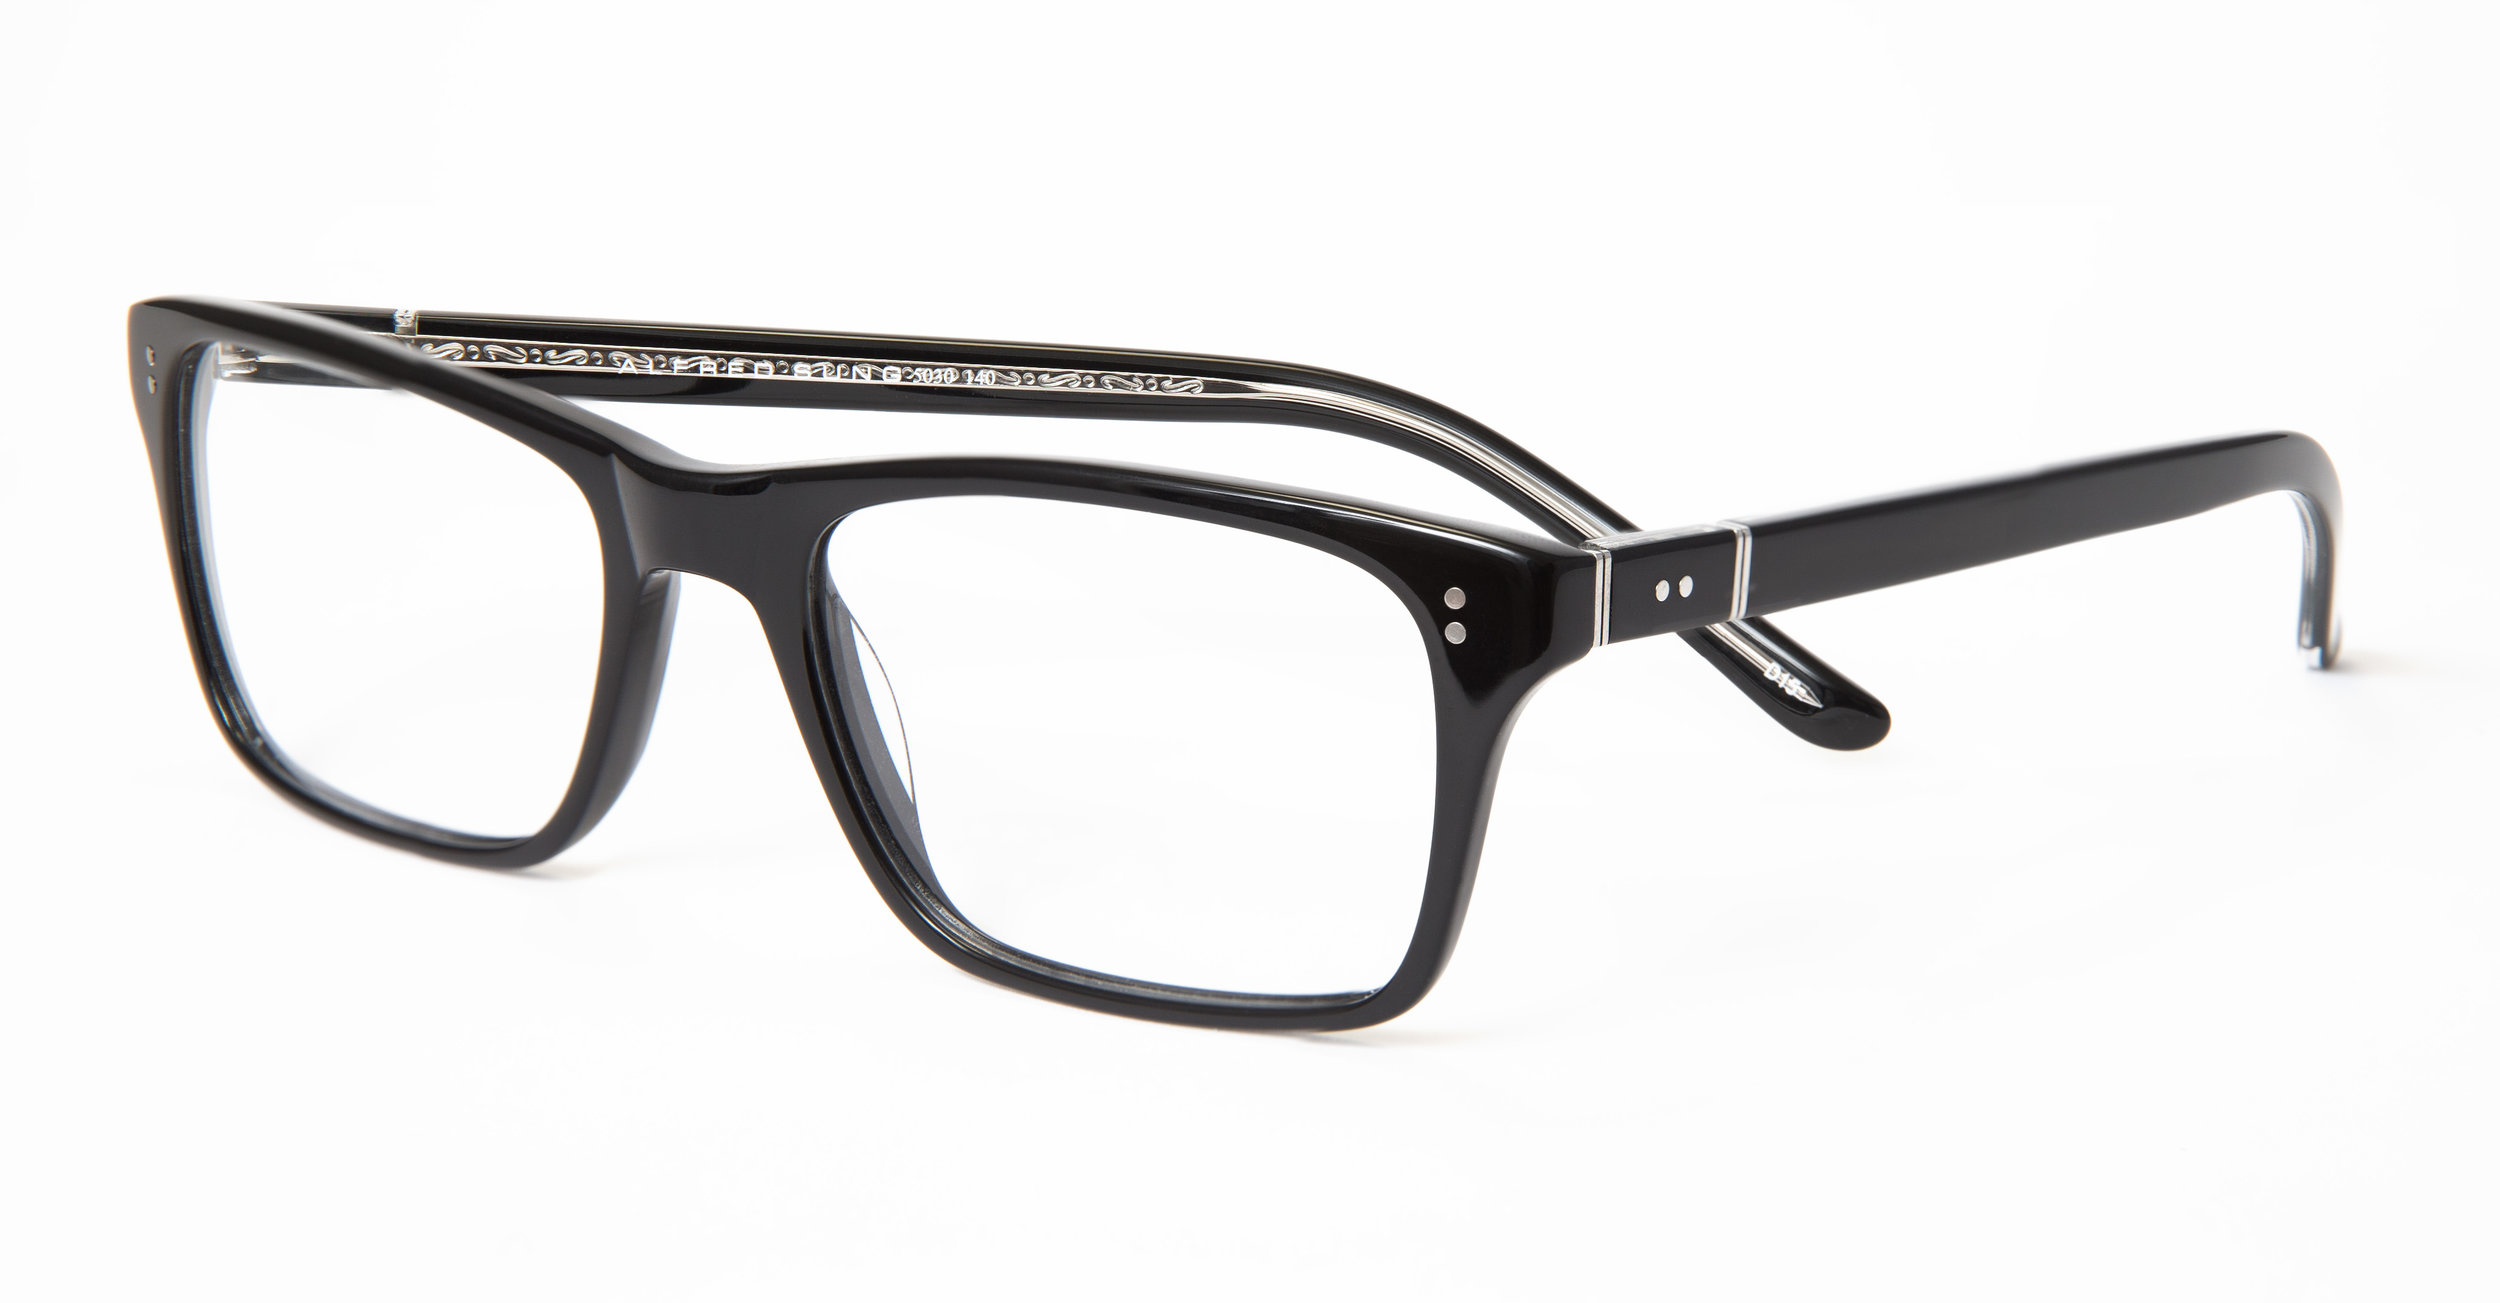 Ophthalmic quality ALFRED SUNG eyewear made in Italy